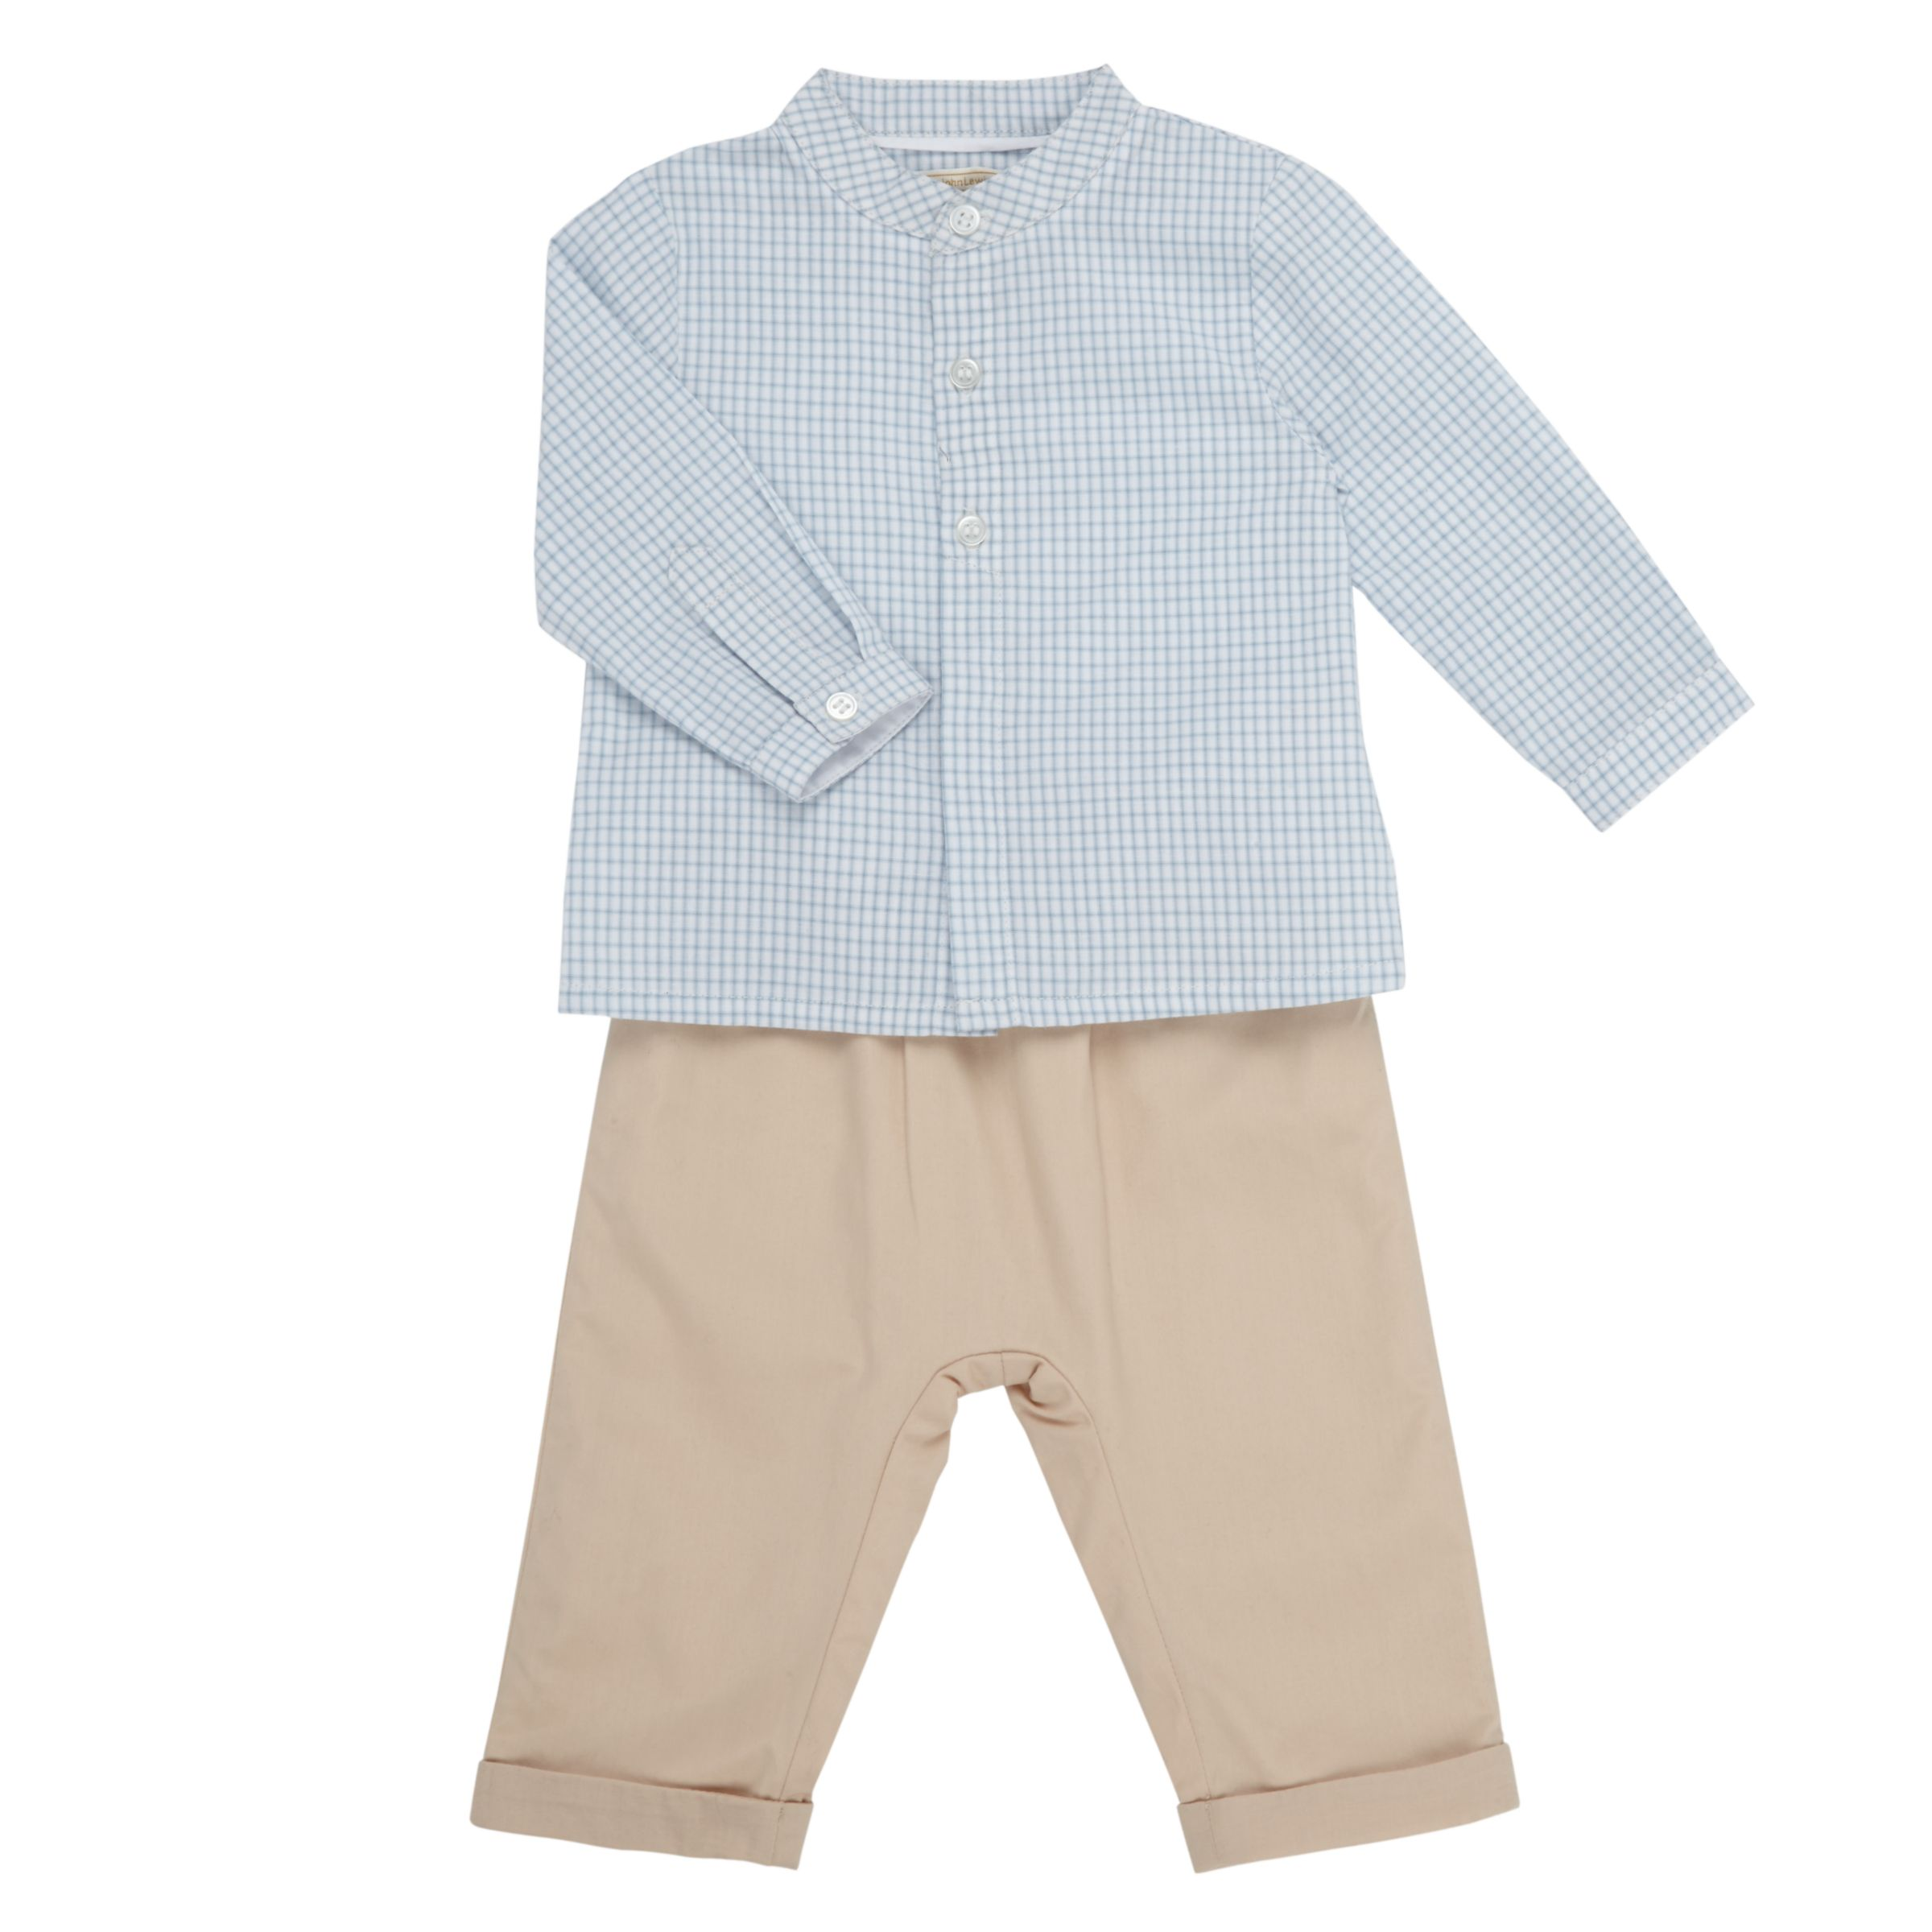 John Lewis Heirloom Collection John Lewis Heirloom Collection Baby Gingham Shirt and Trousers Set, Grey/White